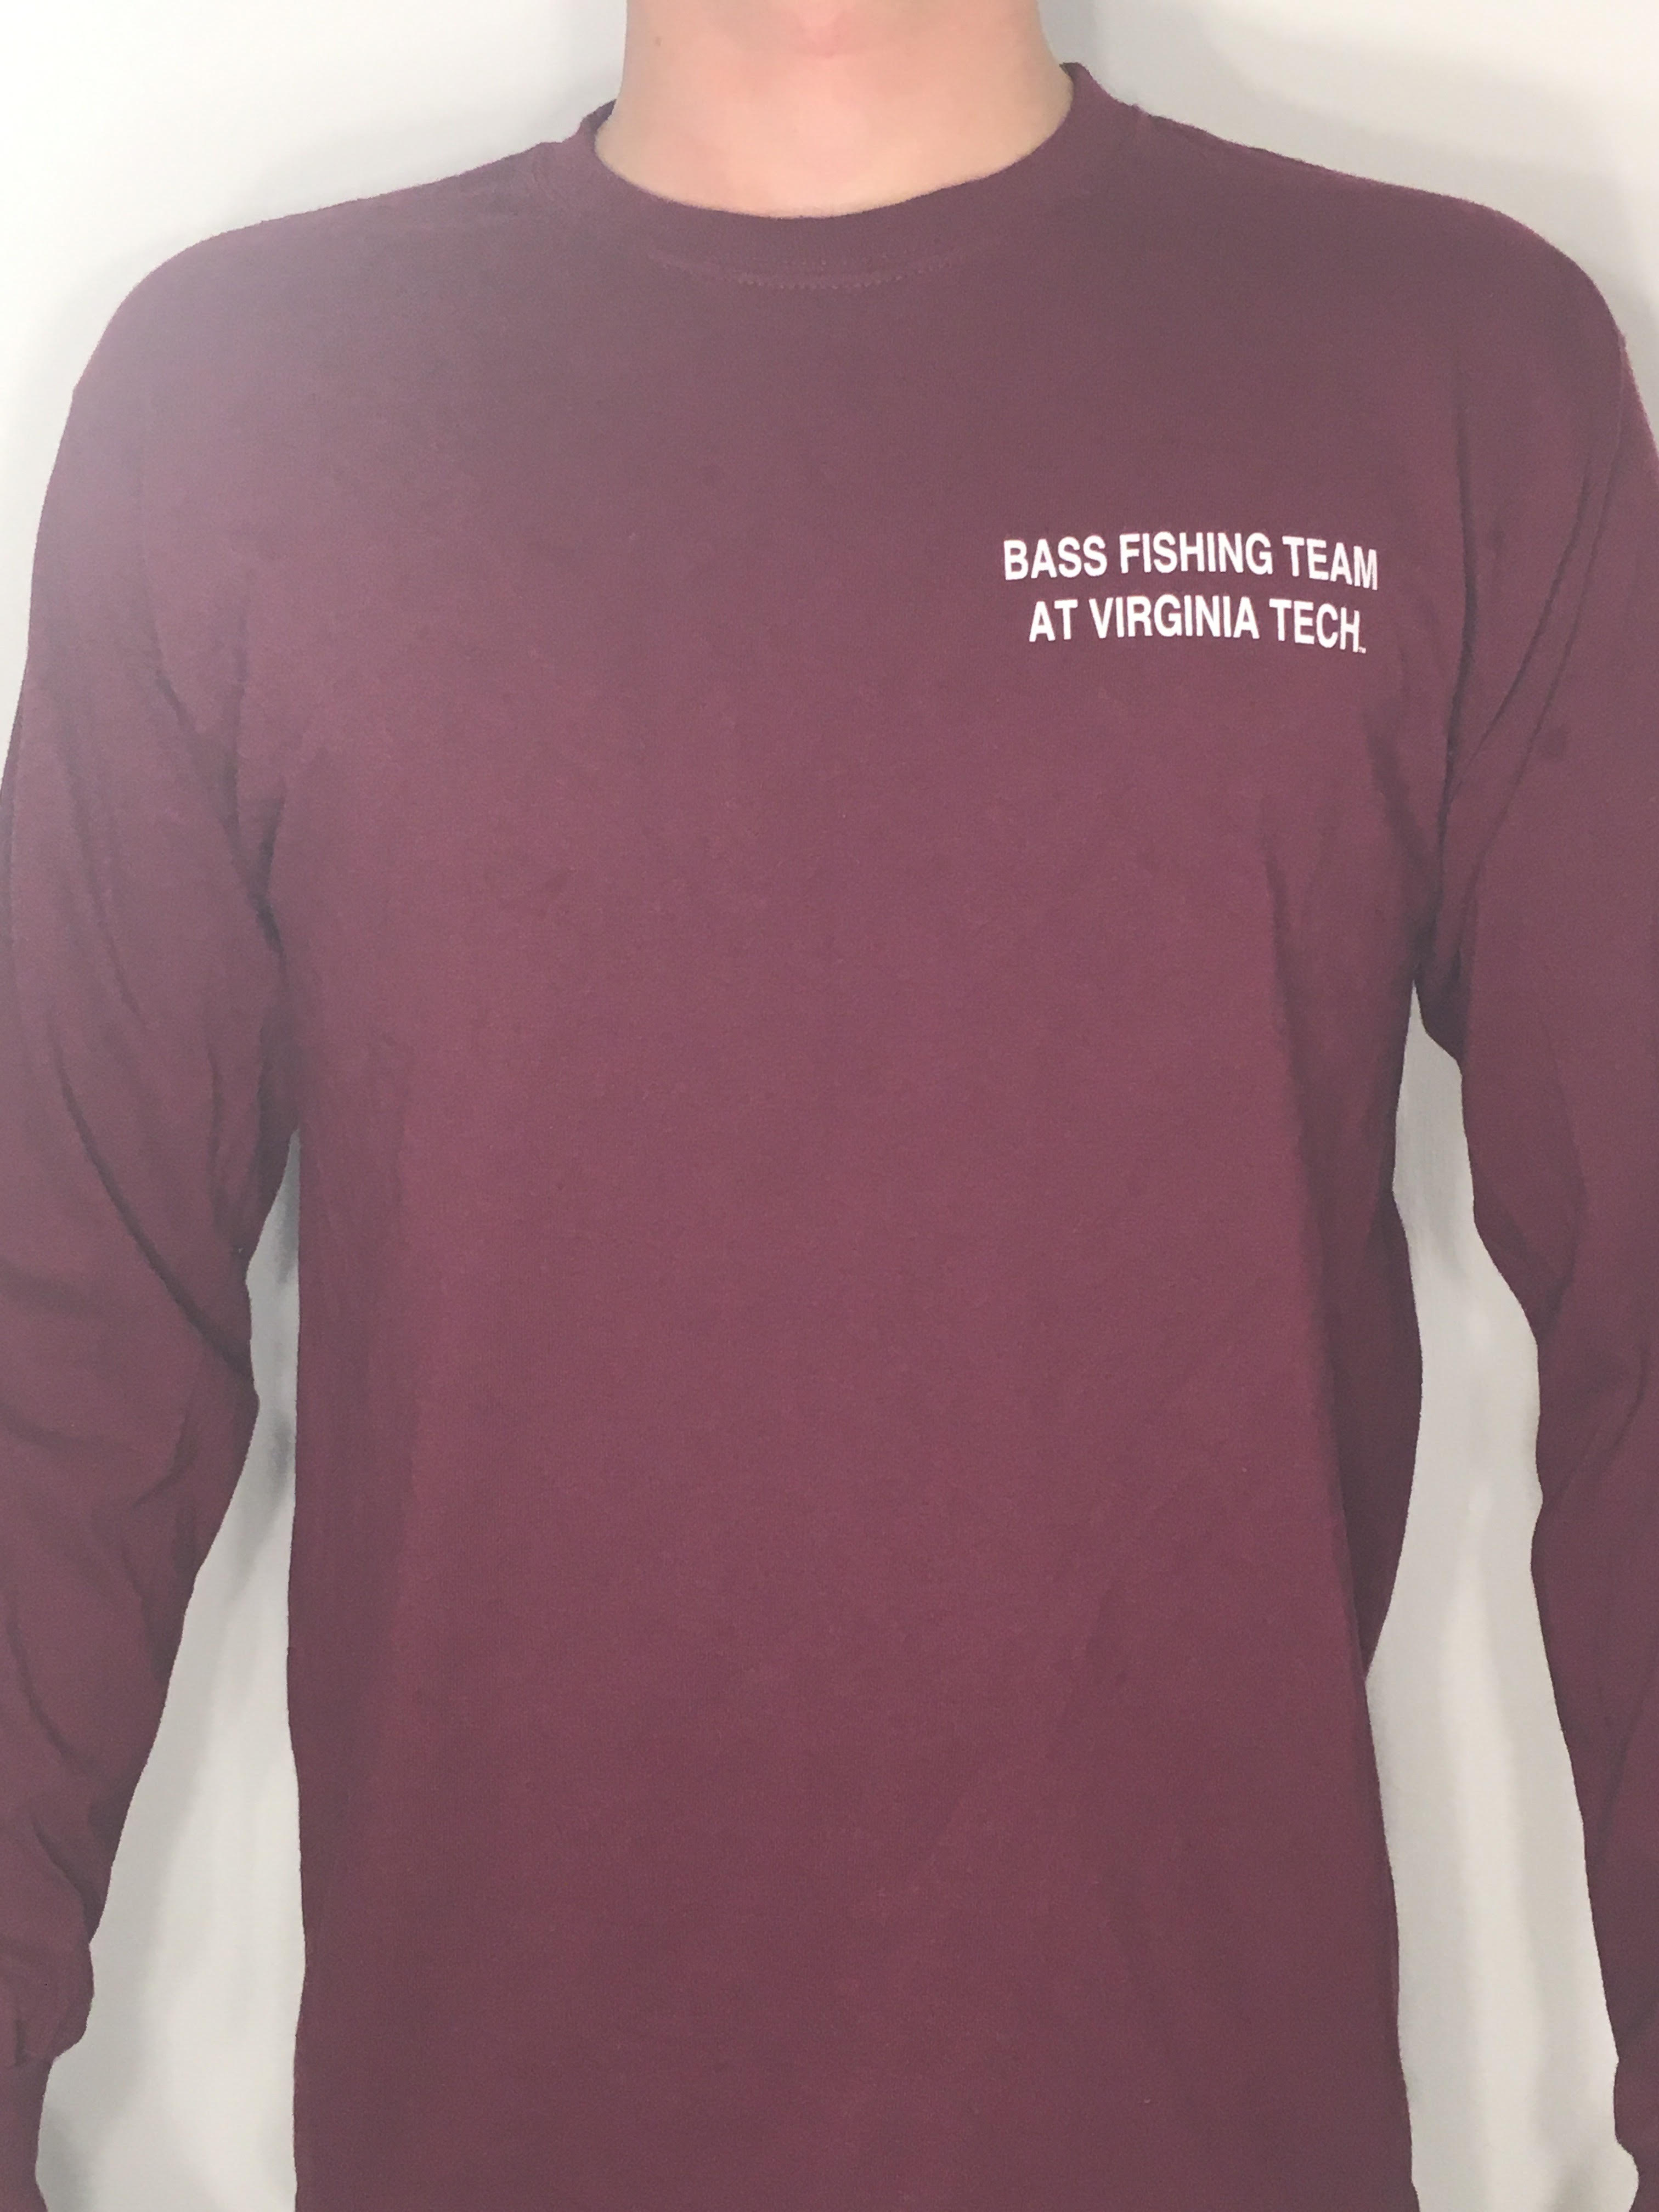 Hokie Bass Logo Shirt Long Sleeve – Maroon – Bass Fishing Team at ...